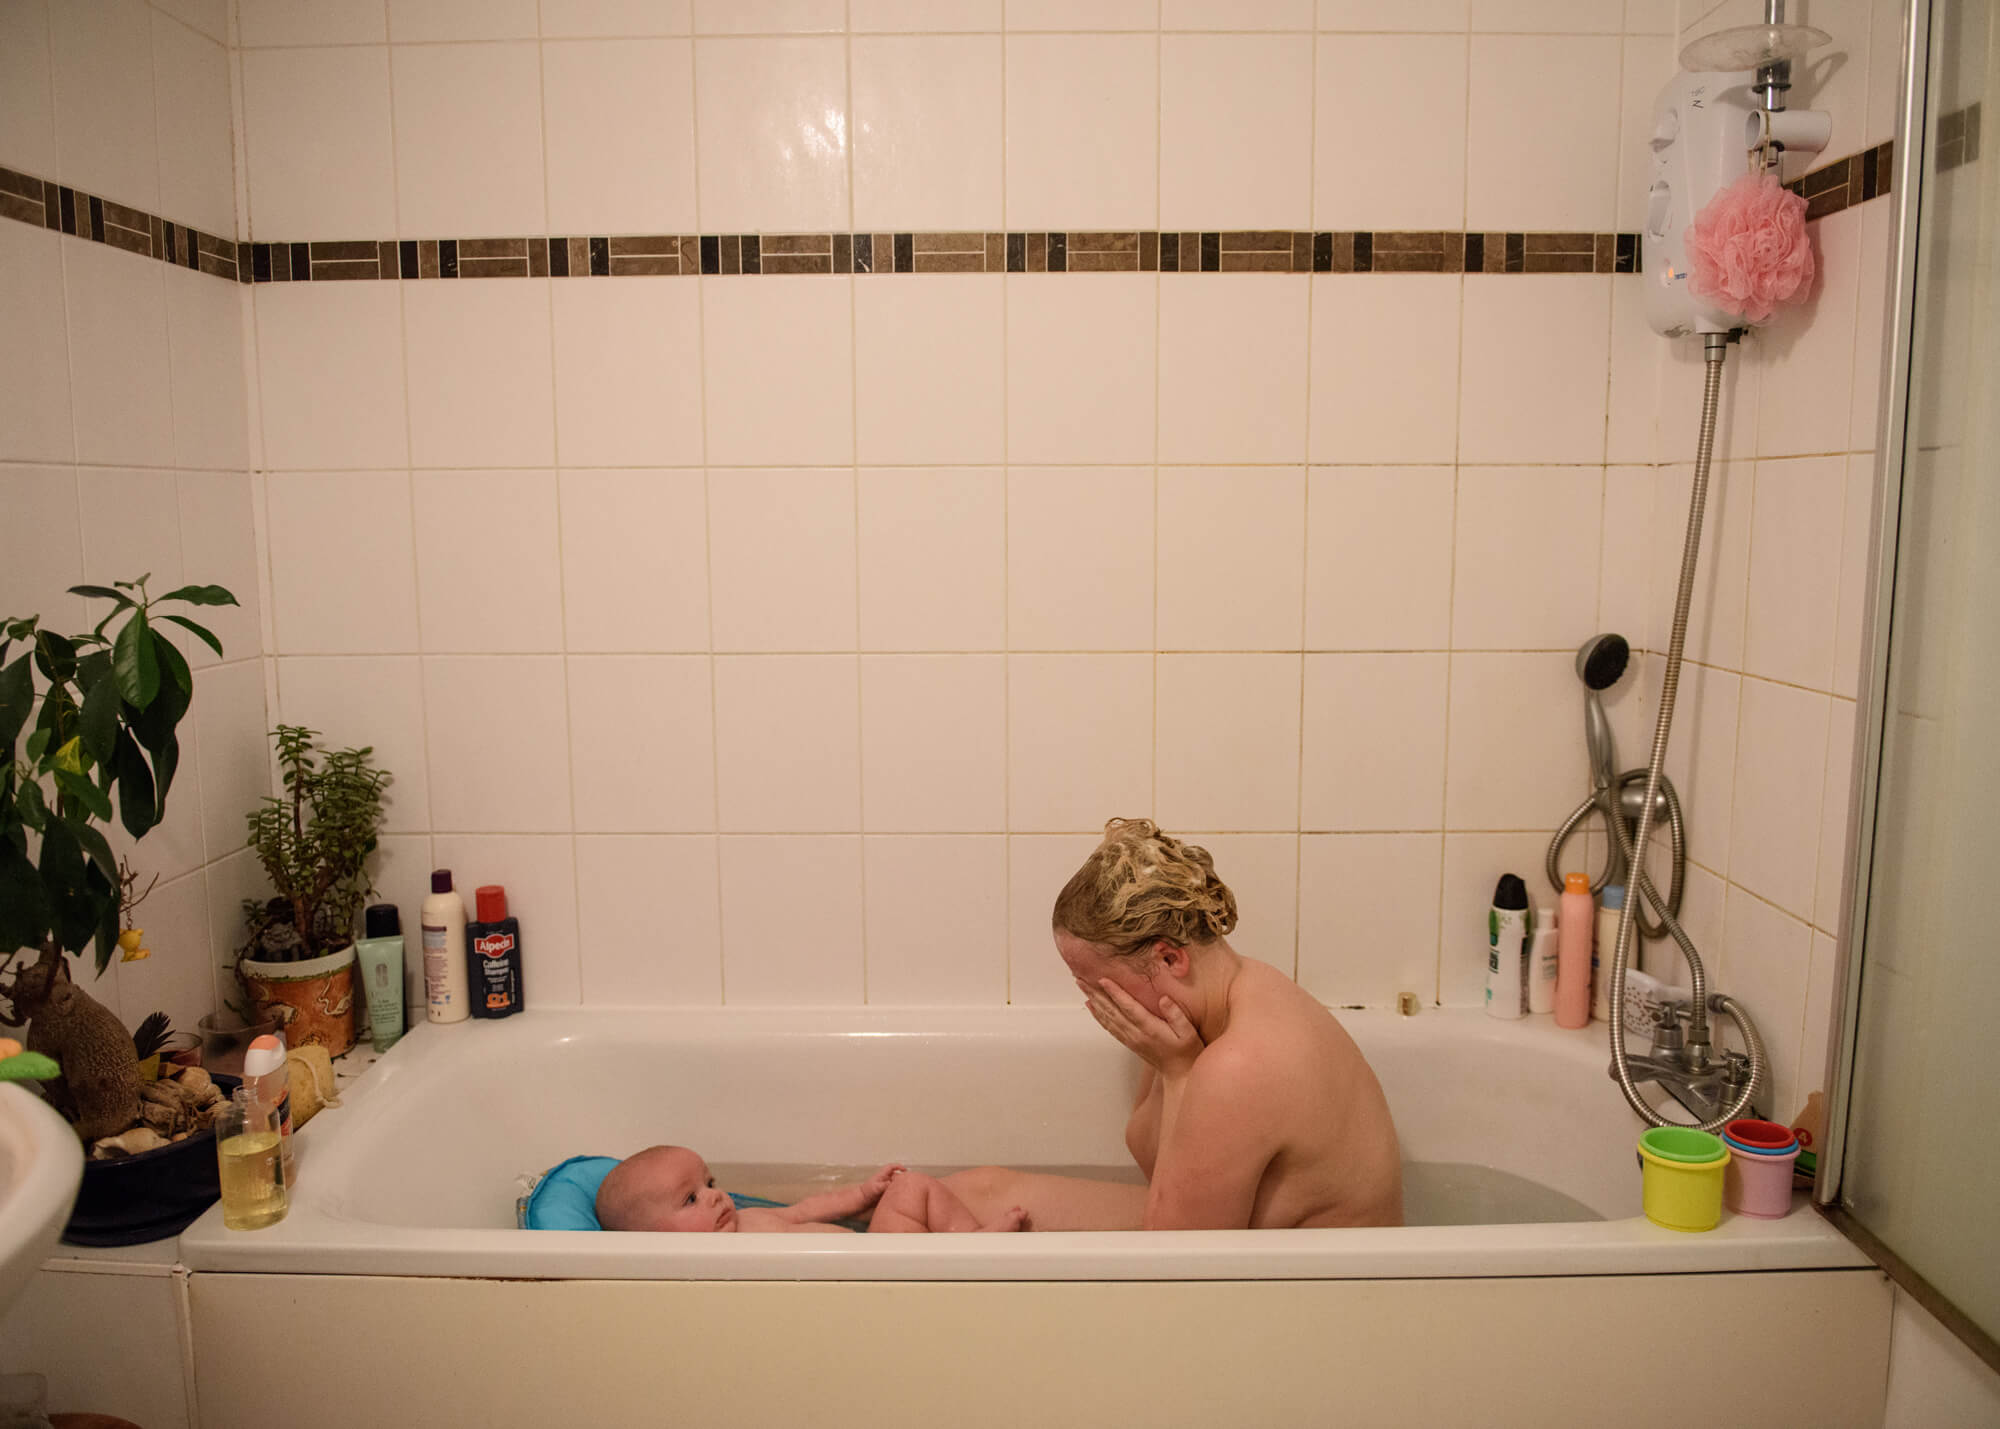 Alice Dempsey photography goodnight god bless women sat naked in bath washing her small baby with white tiled background the south west collective of photography